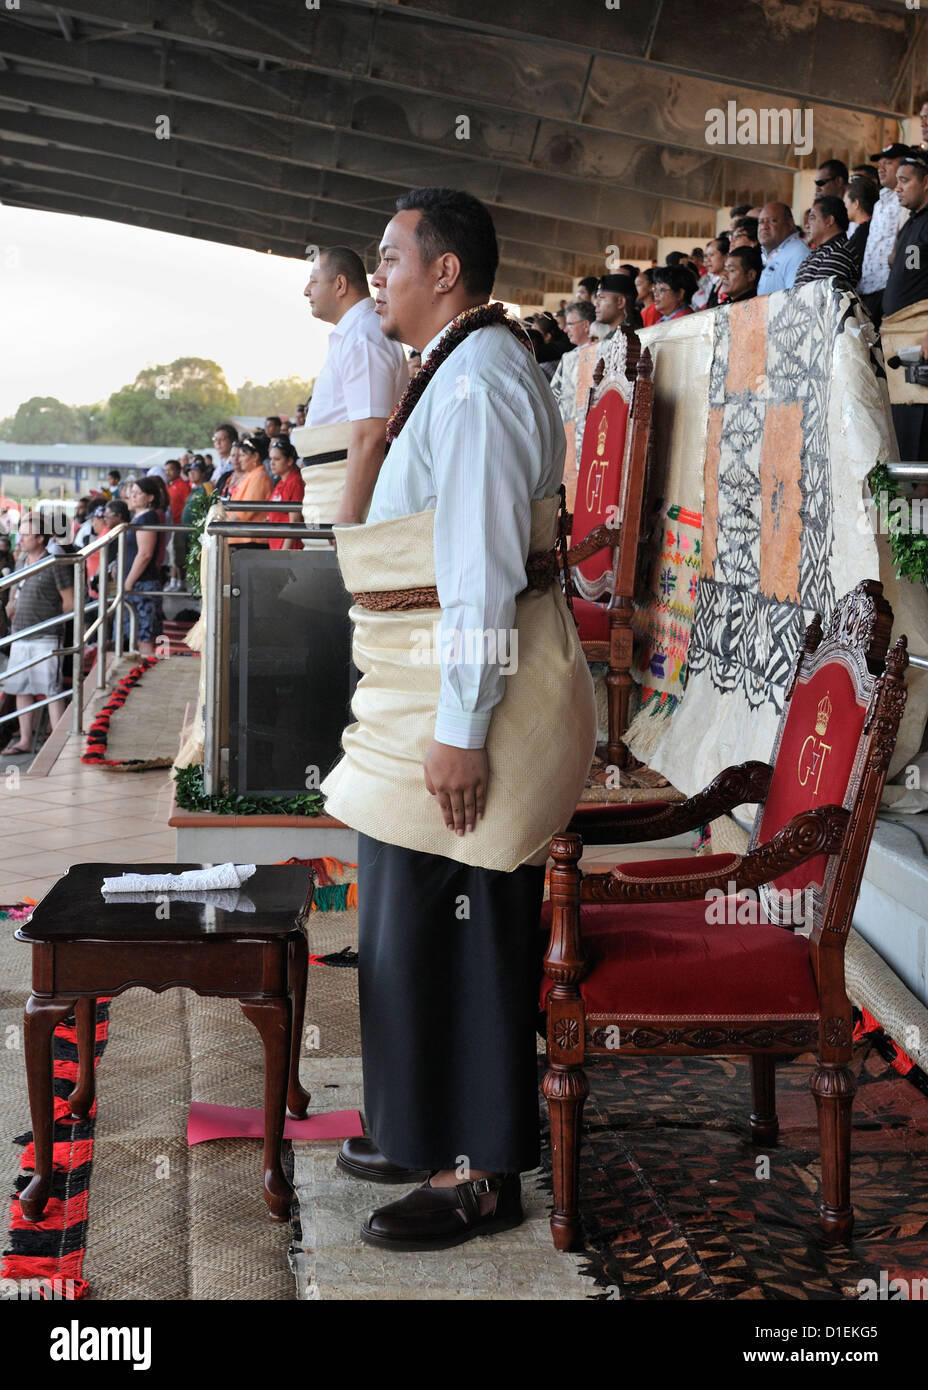 King Topou V1 and the Crown Prince, HRH Prince Tupouto'a 'Ulukalala (foreground) stand during the Tongan national Stock Photo